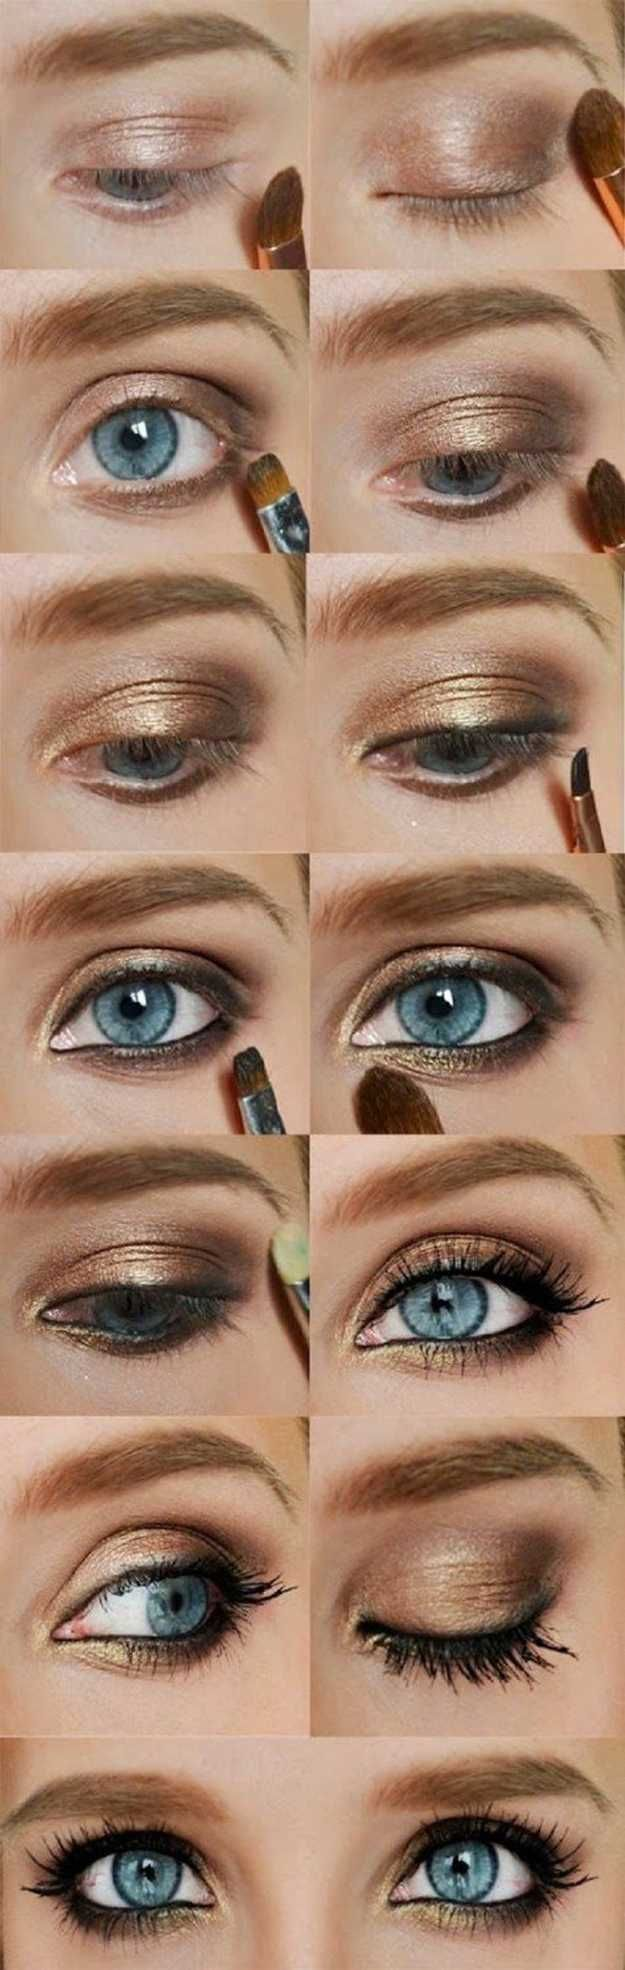 makeup ideas for blue eyes and blonde hair | kakaozzank.co